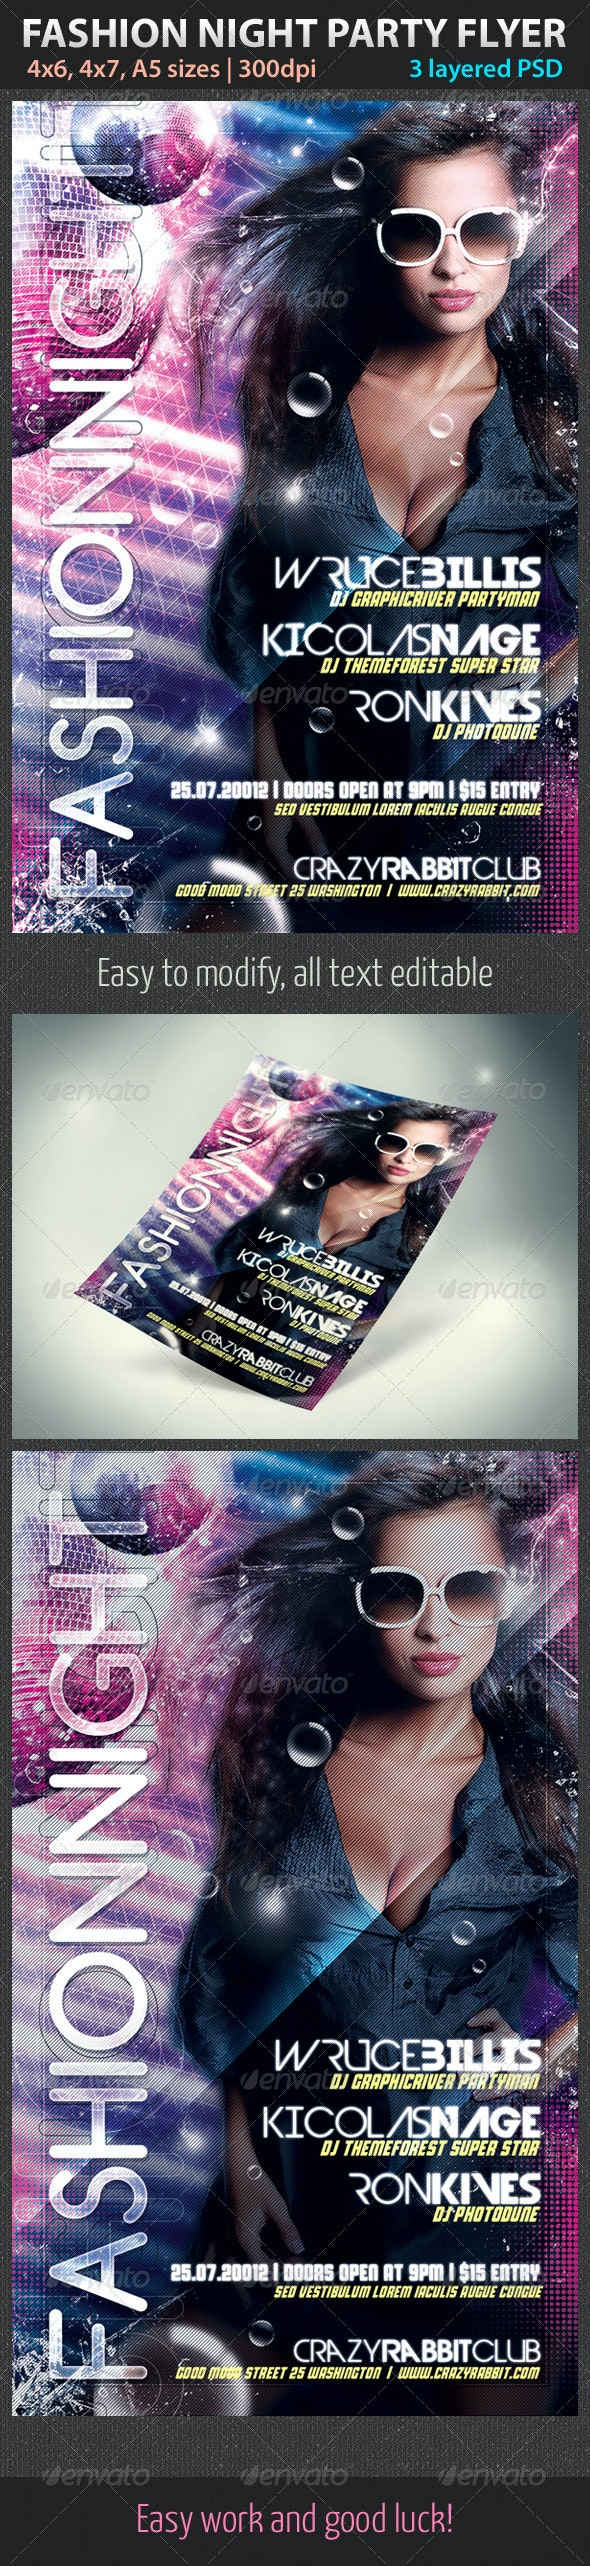 Fashion Night Party Flyer - Clubs & Parties Events